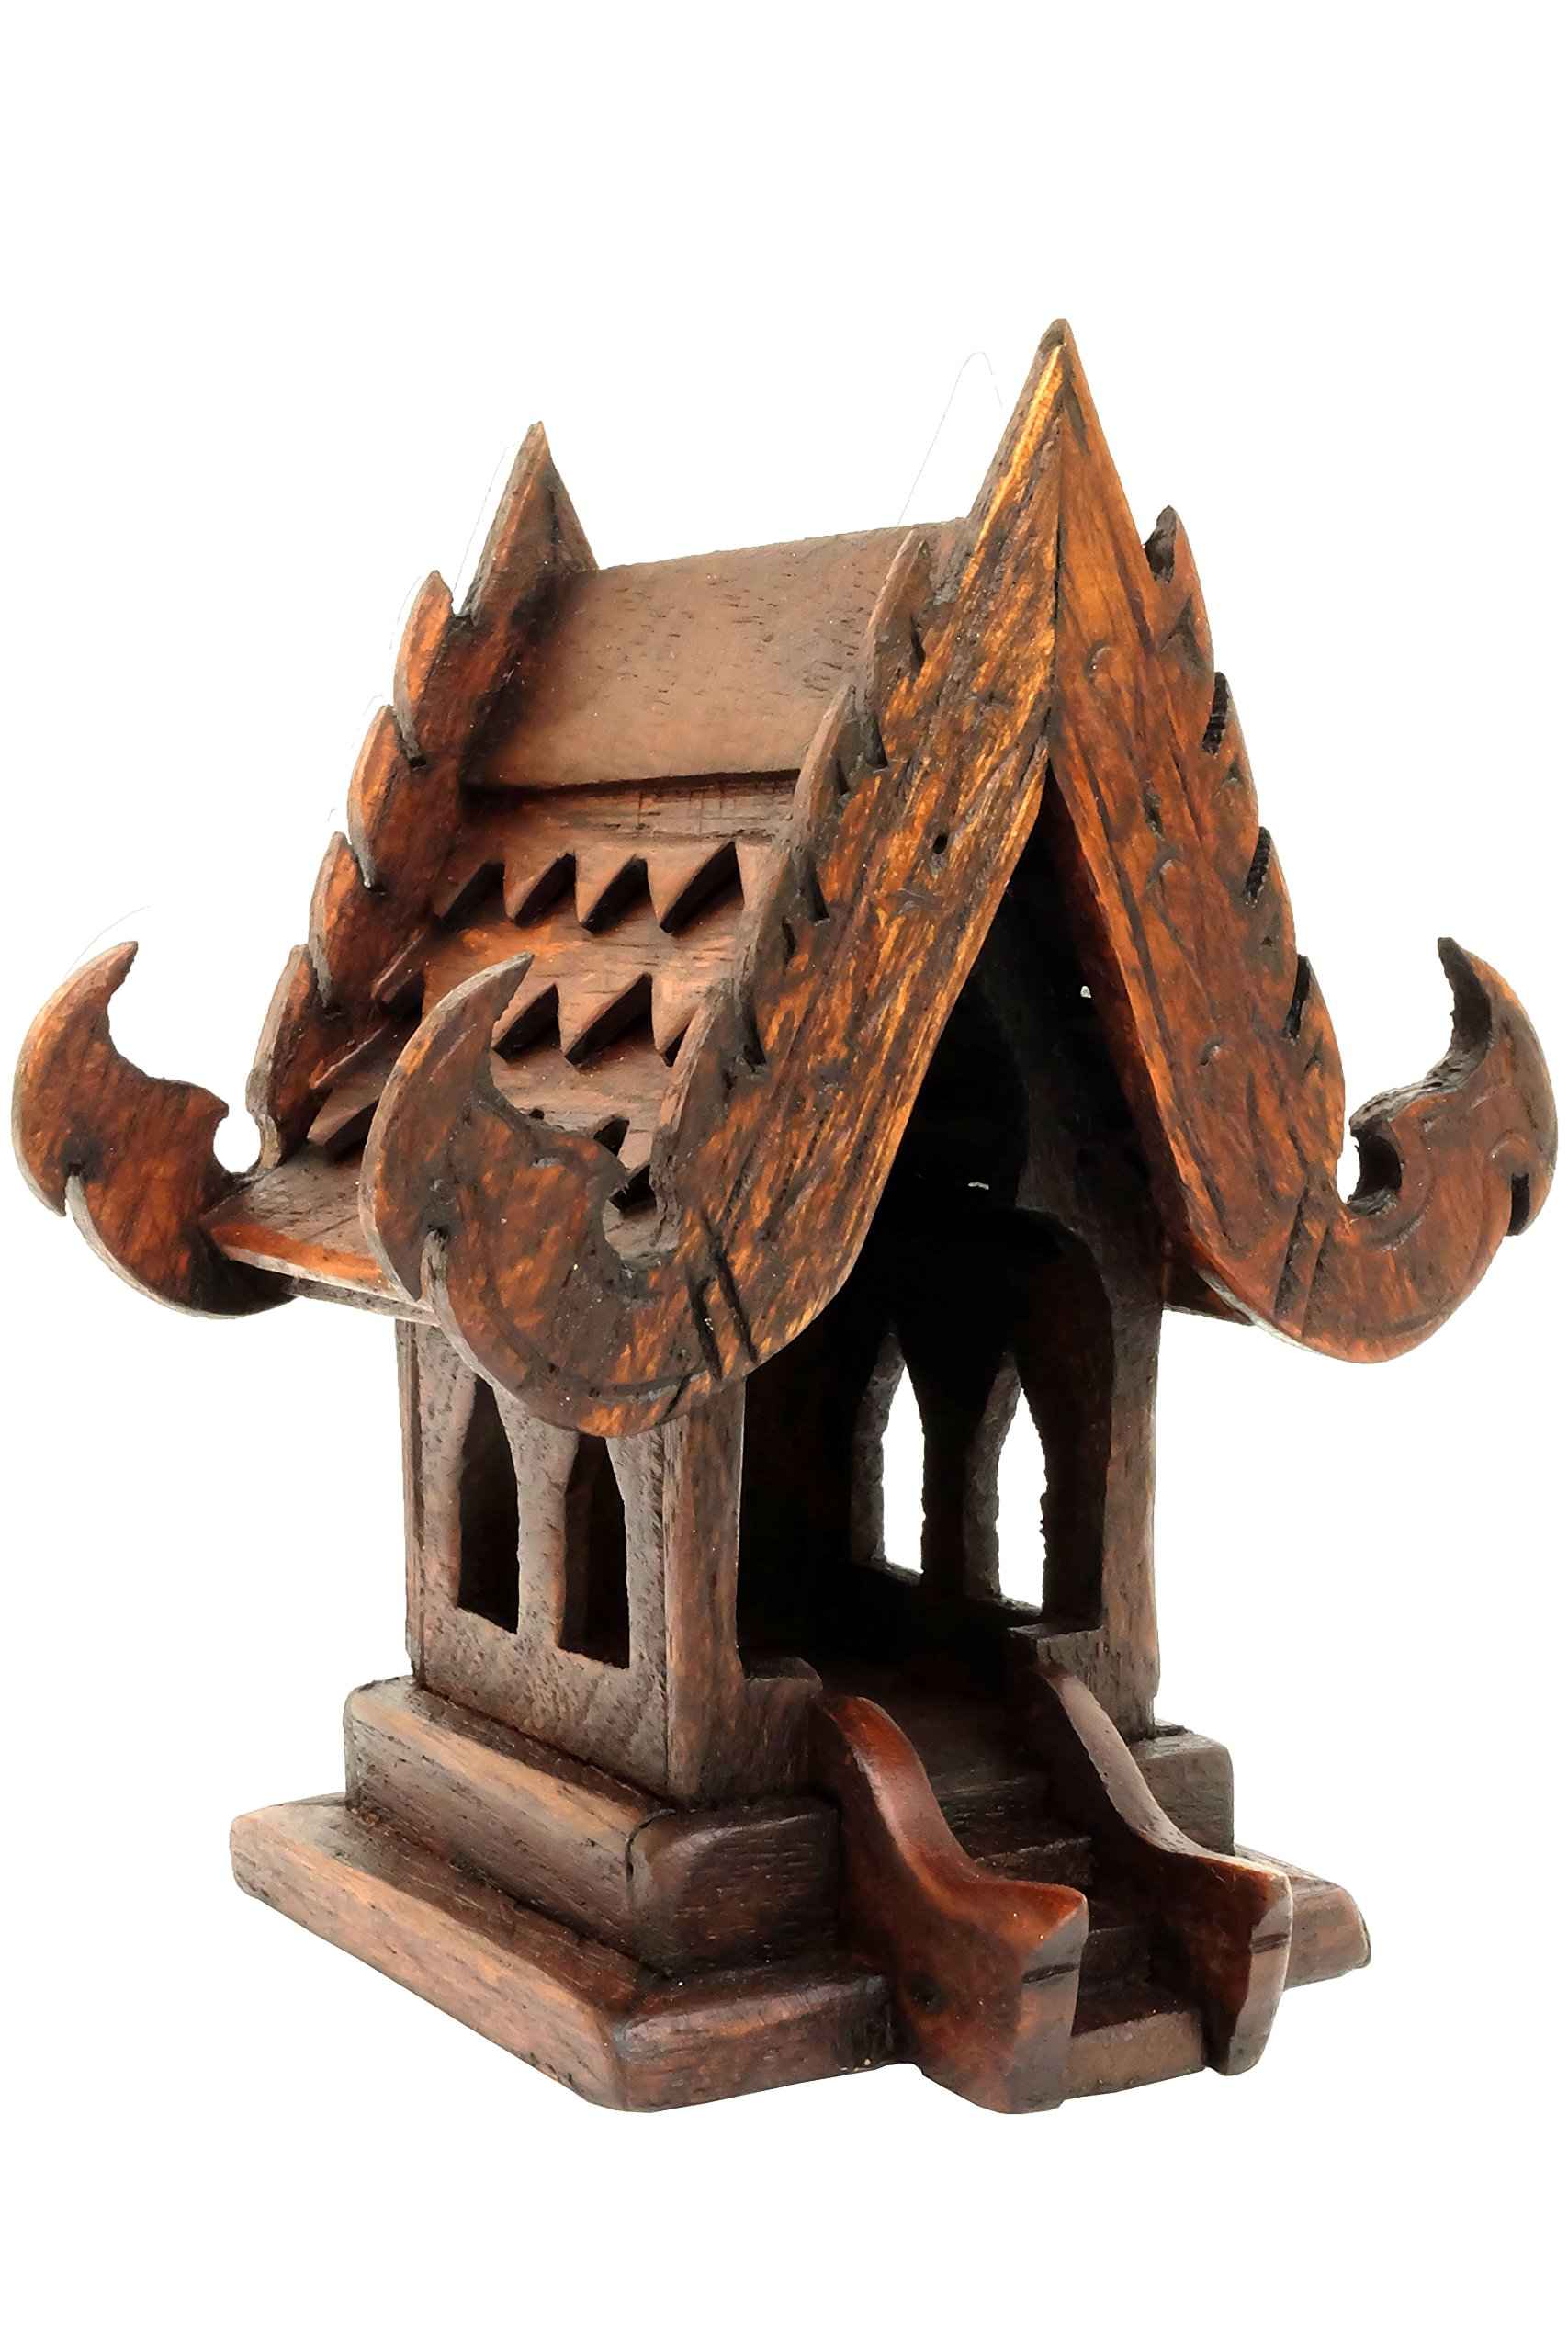 DDPremium Spirit House Thai Buddhism Handmade Teak Wood (W4 xL3 xH5) by DDPremium